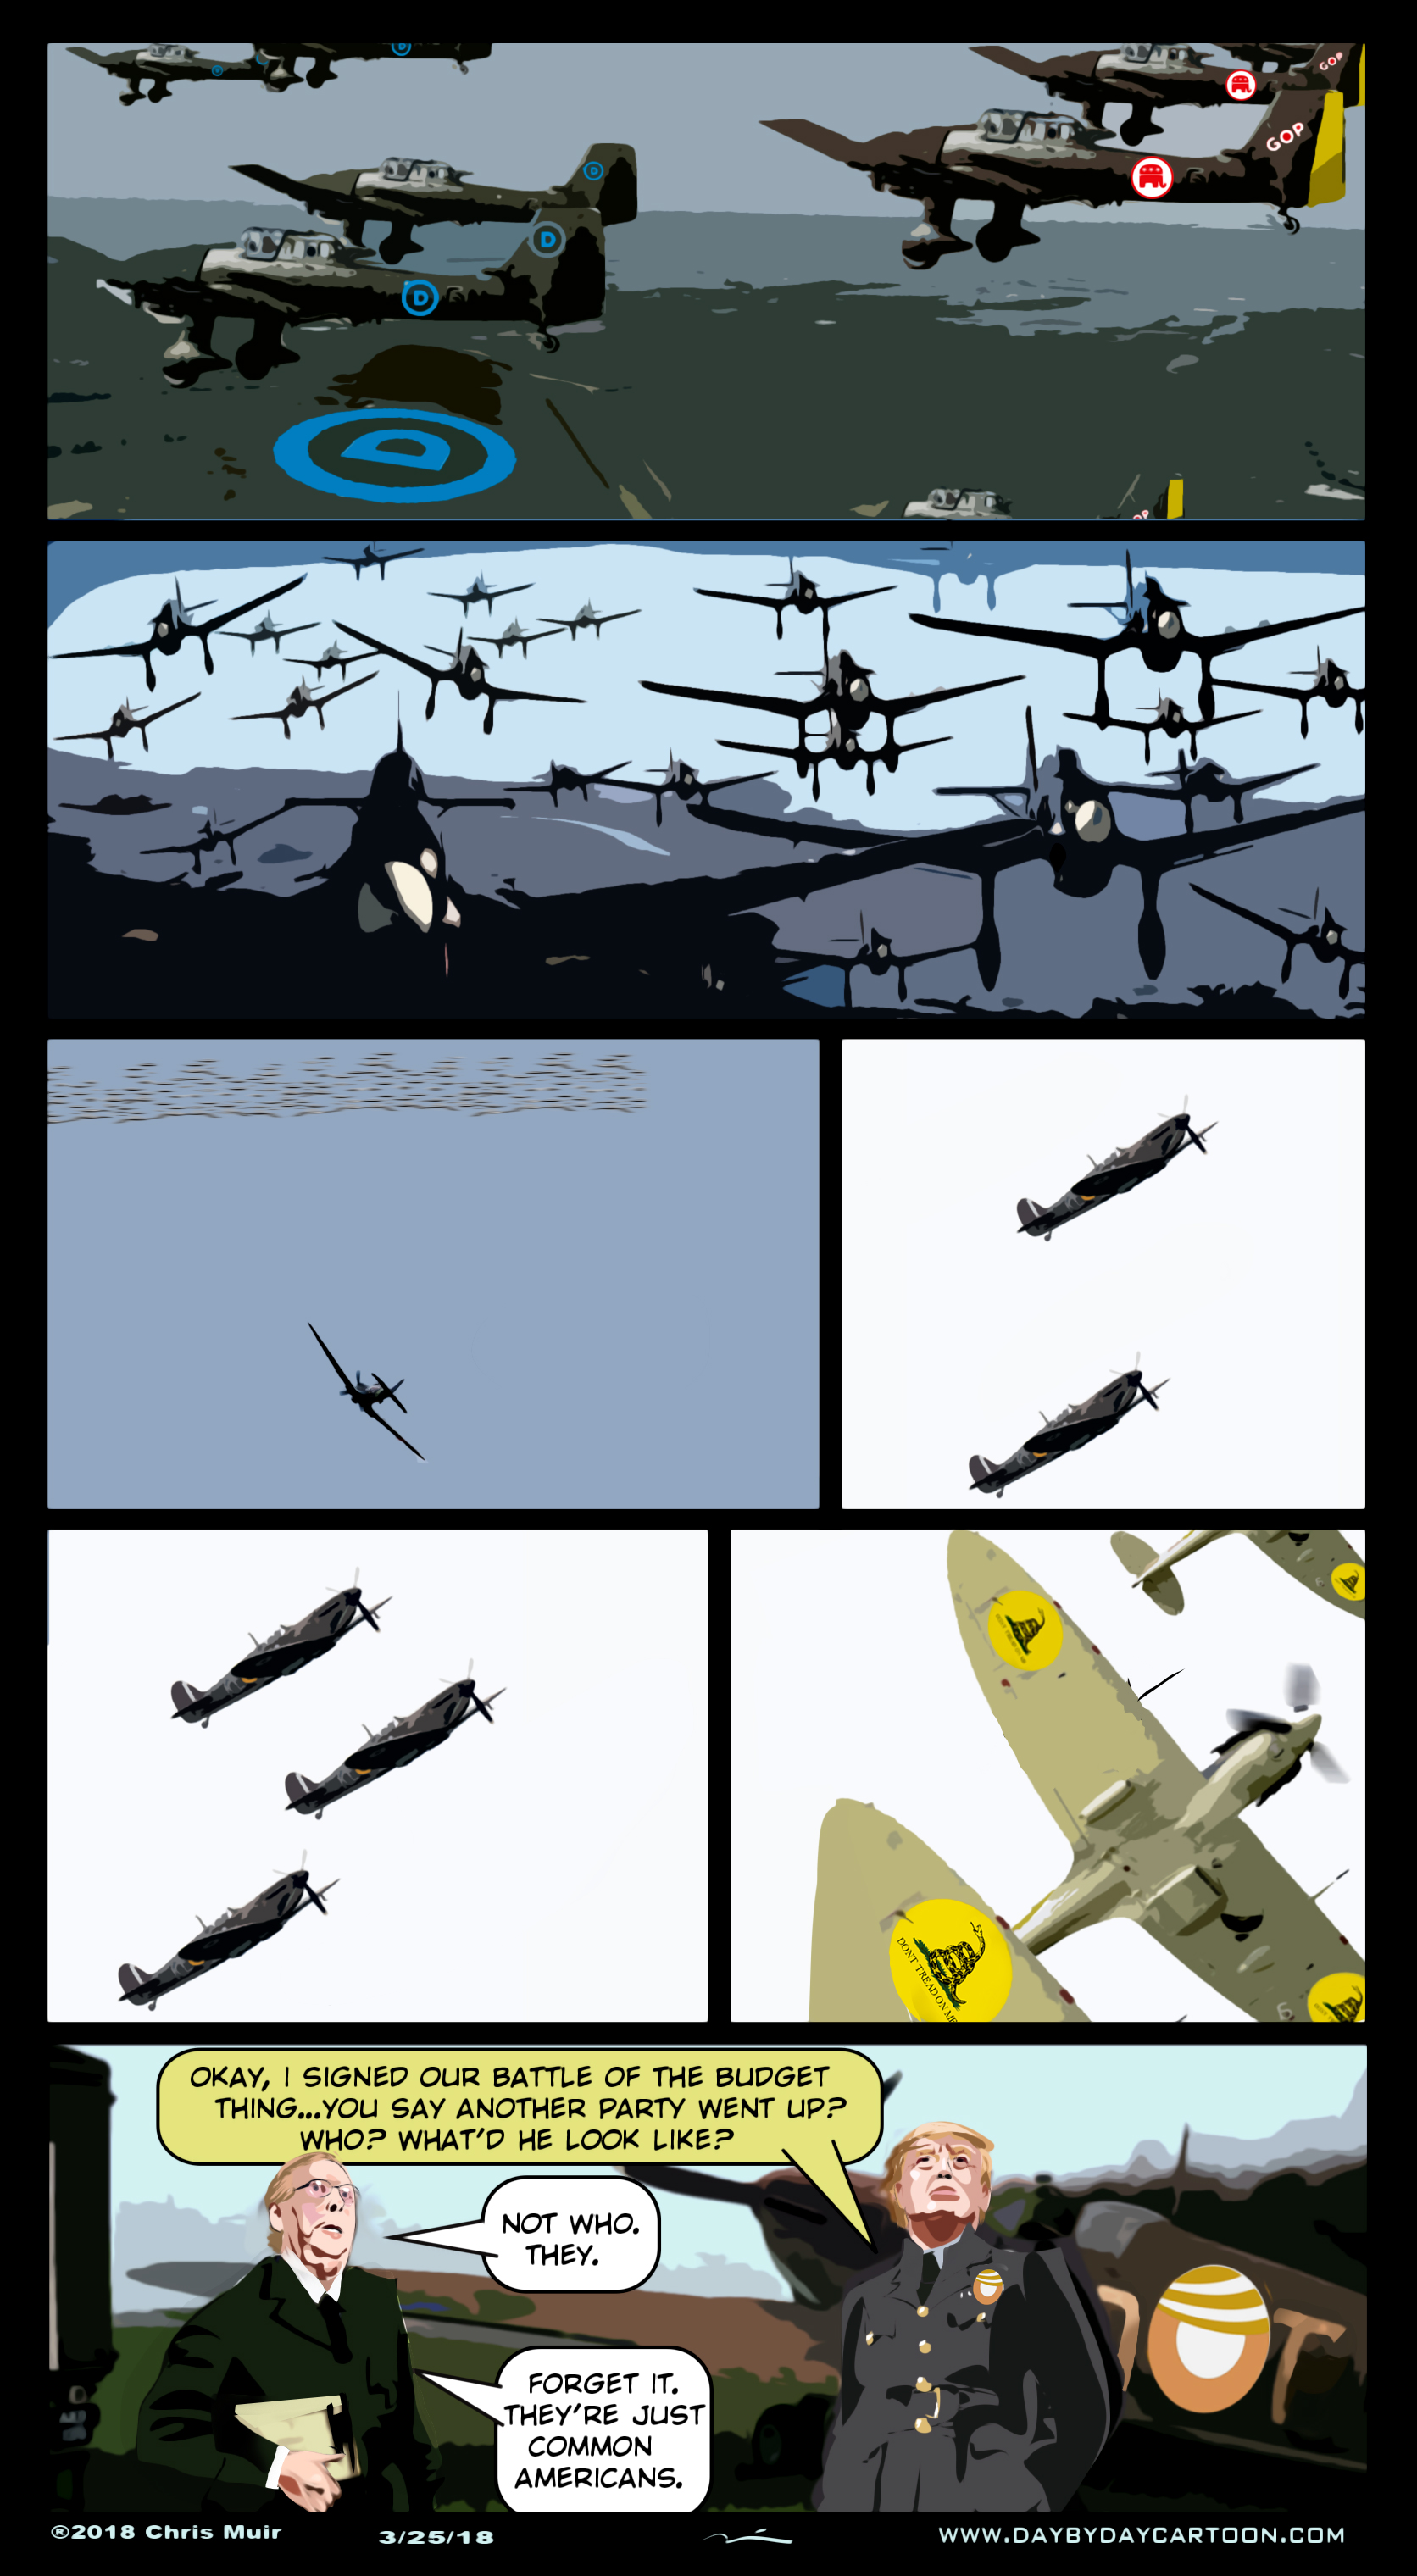 The Gathering Storm. www.daybydaycartoon.com